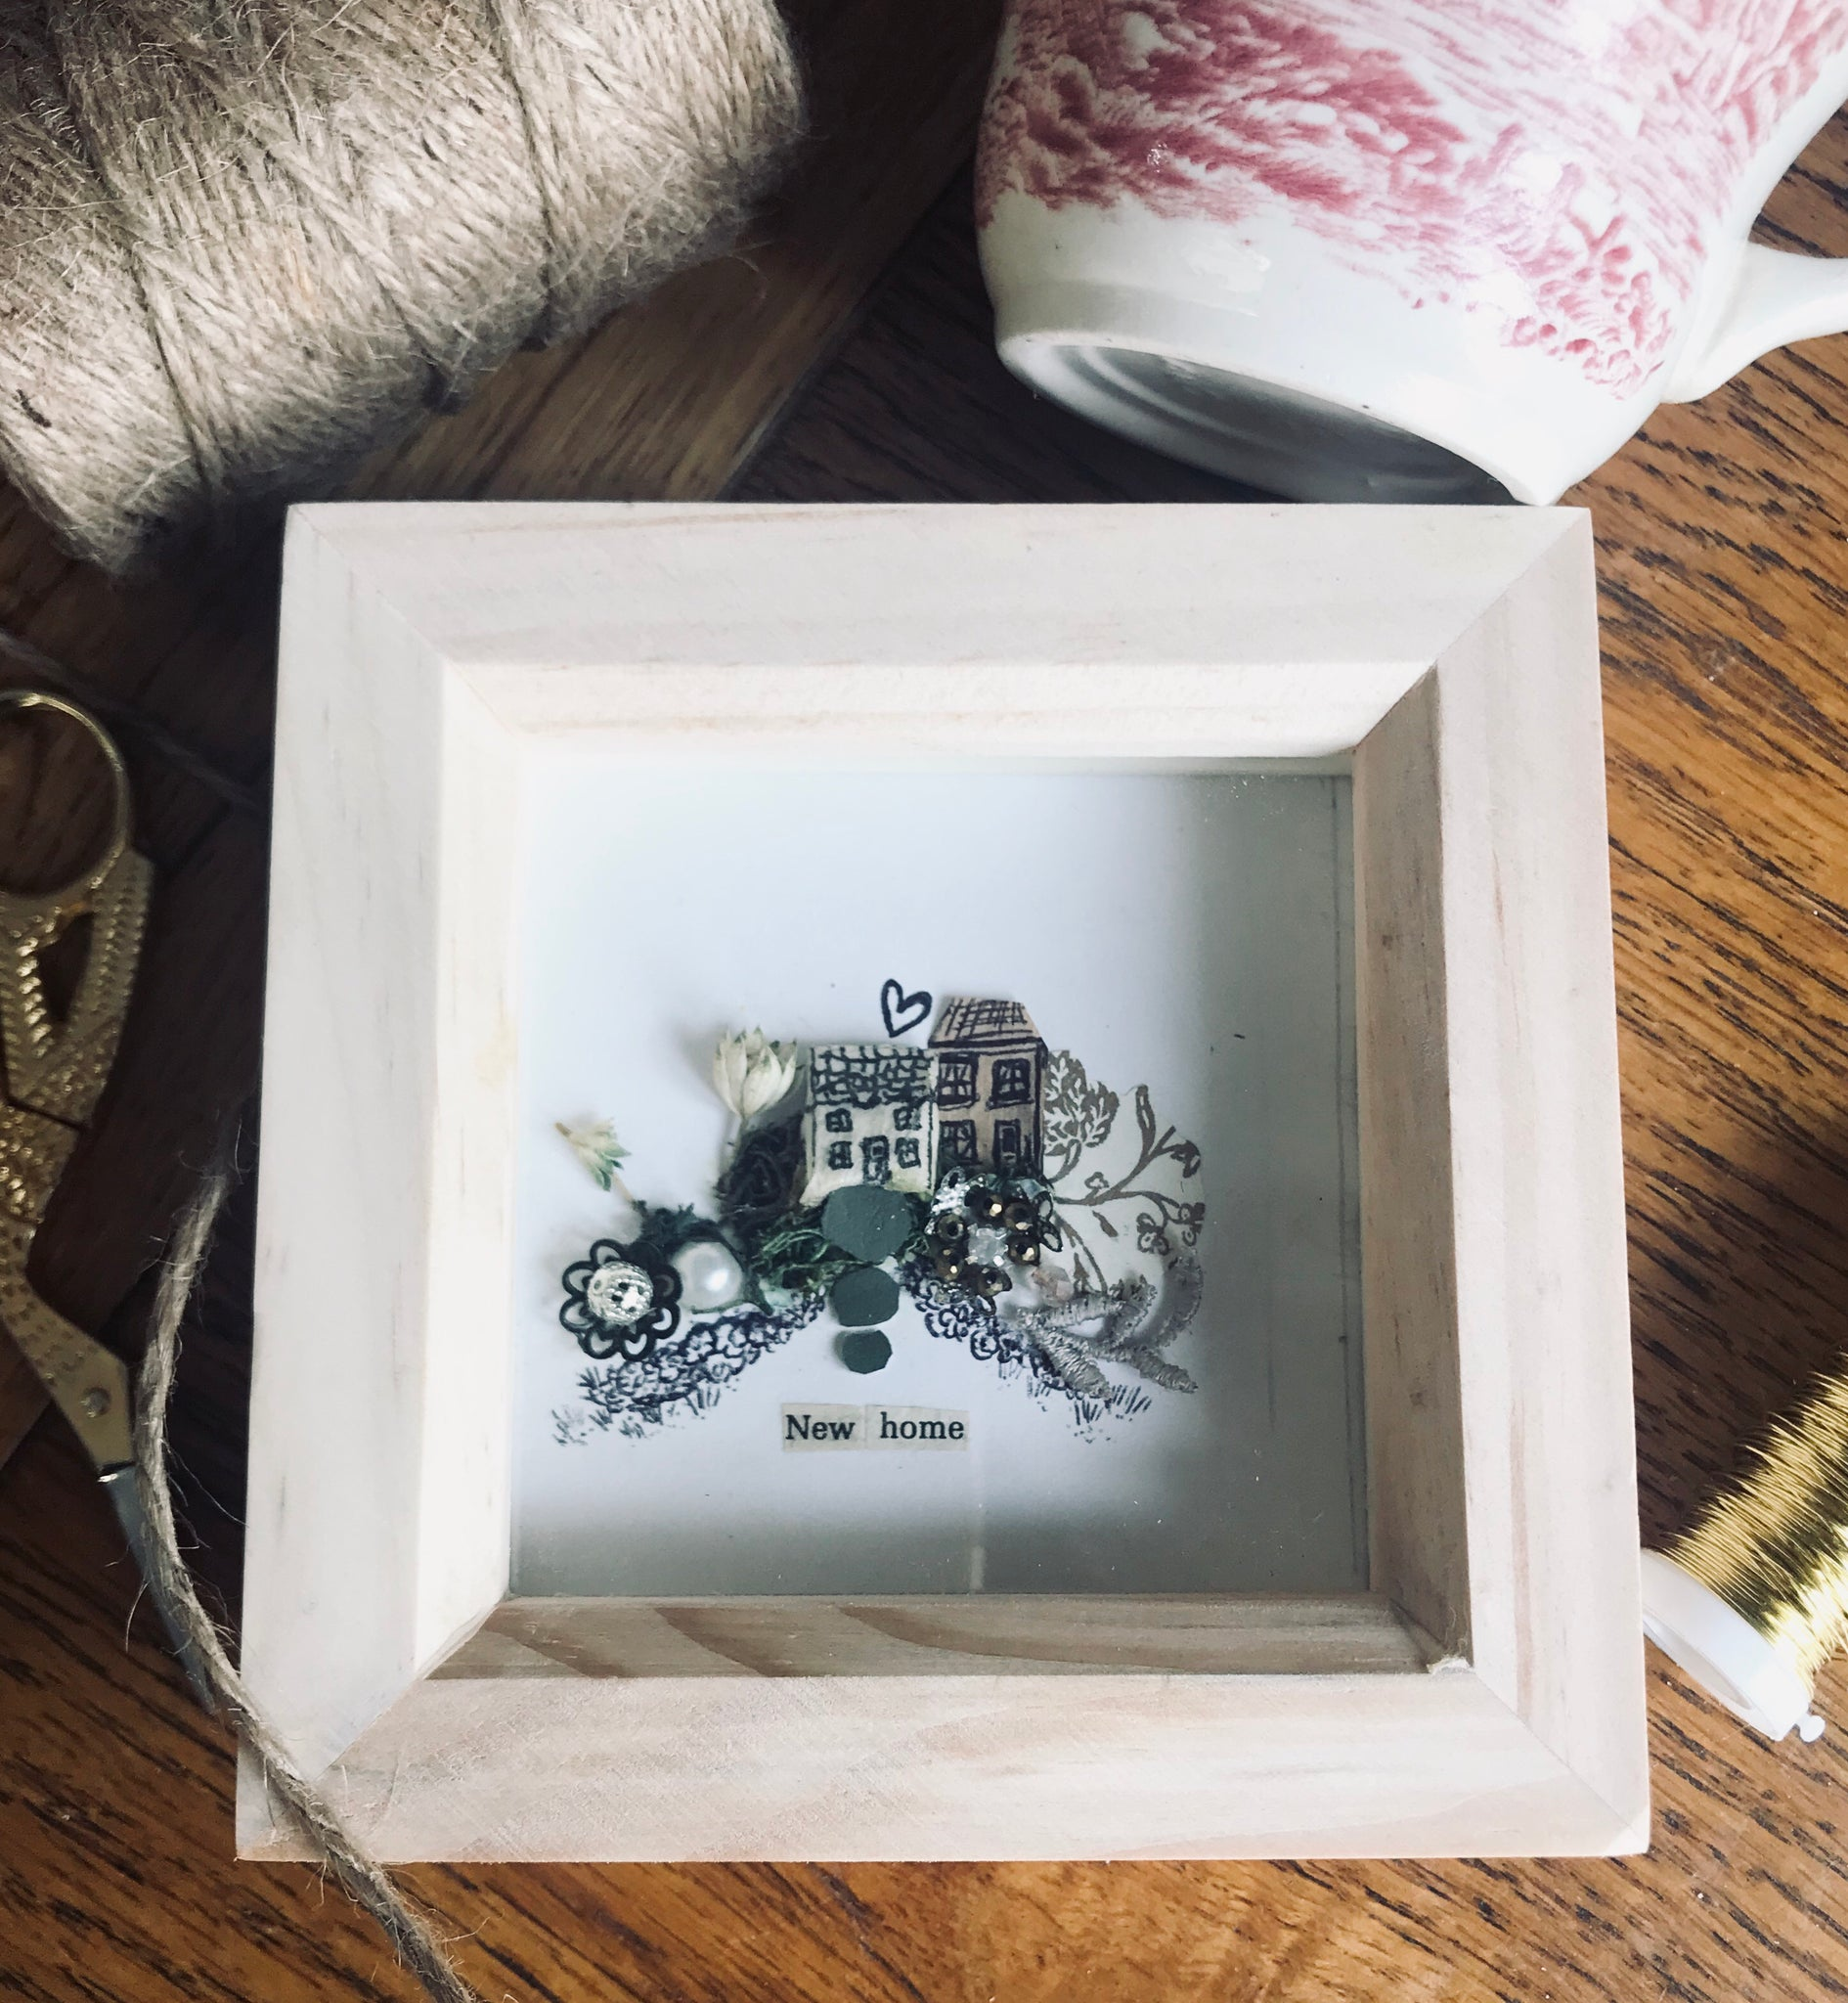 'New Home' shadow box